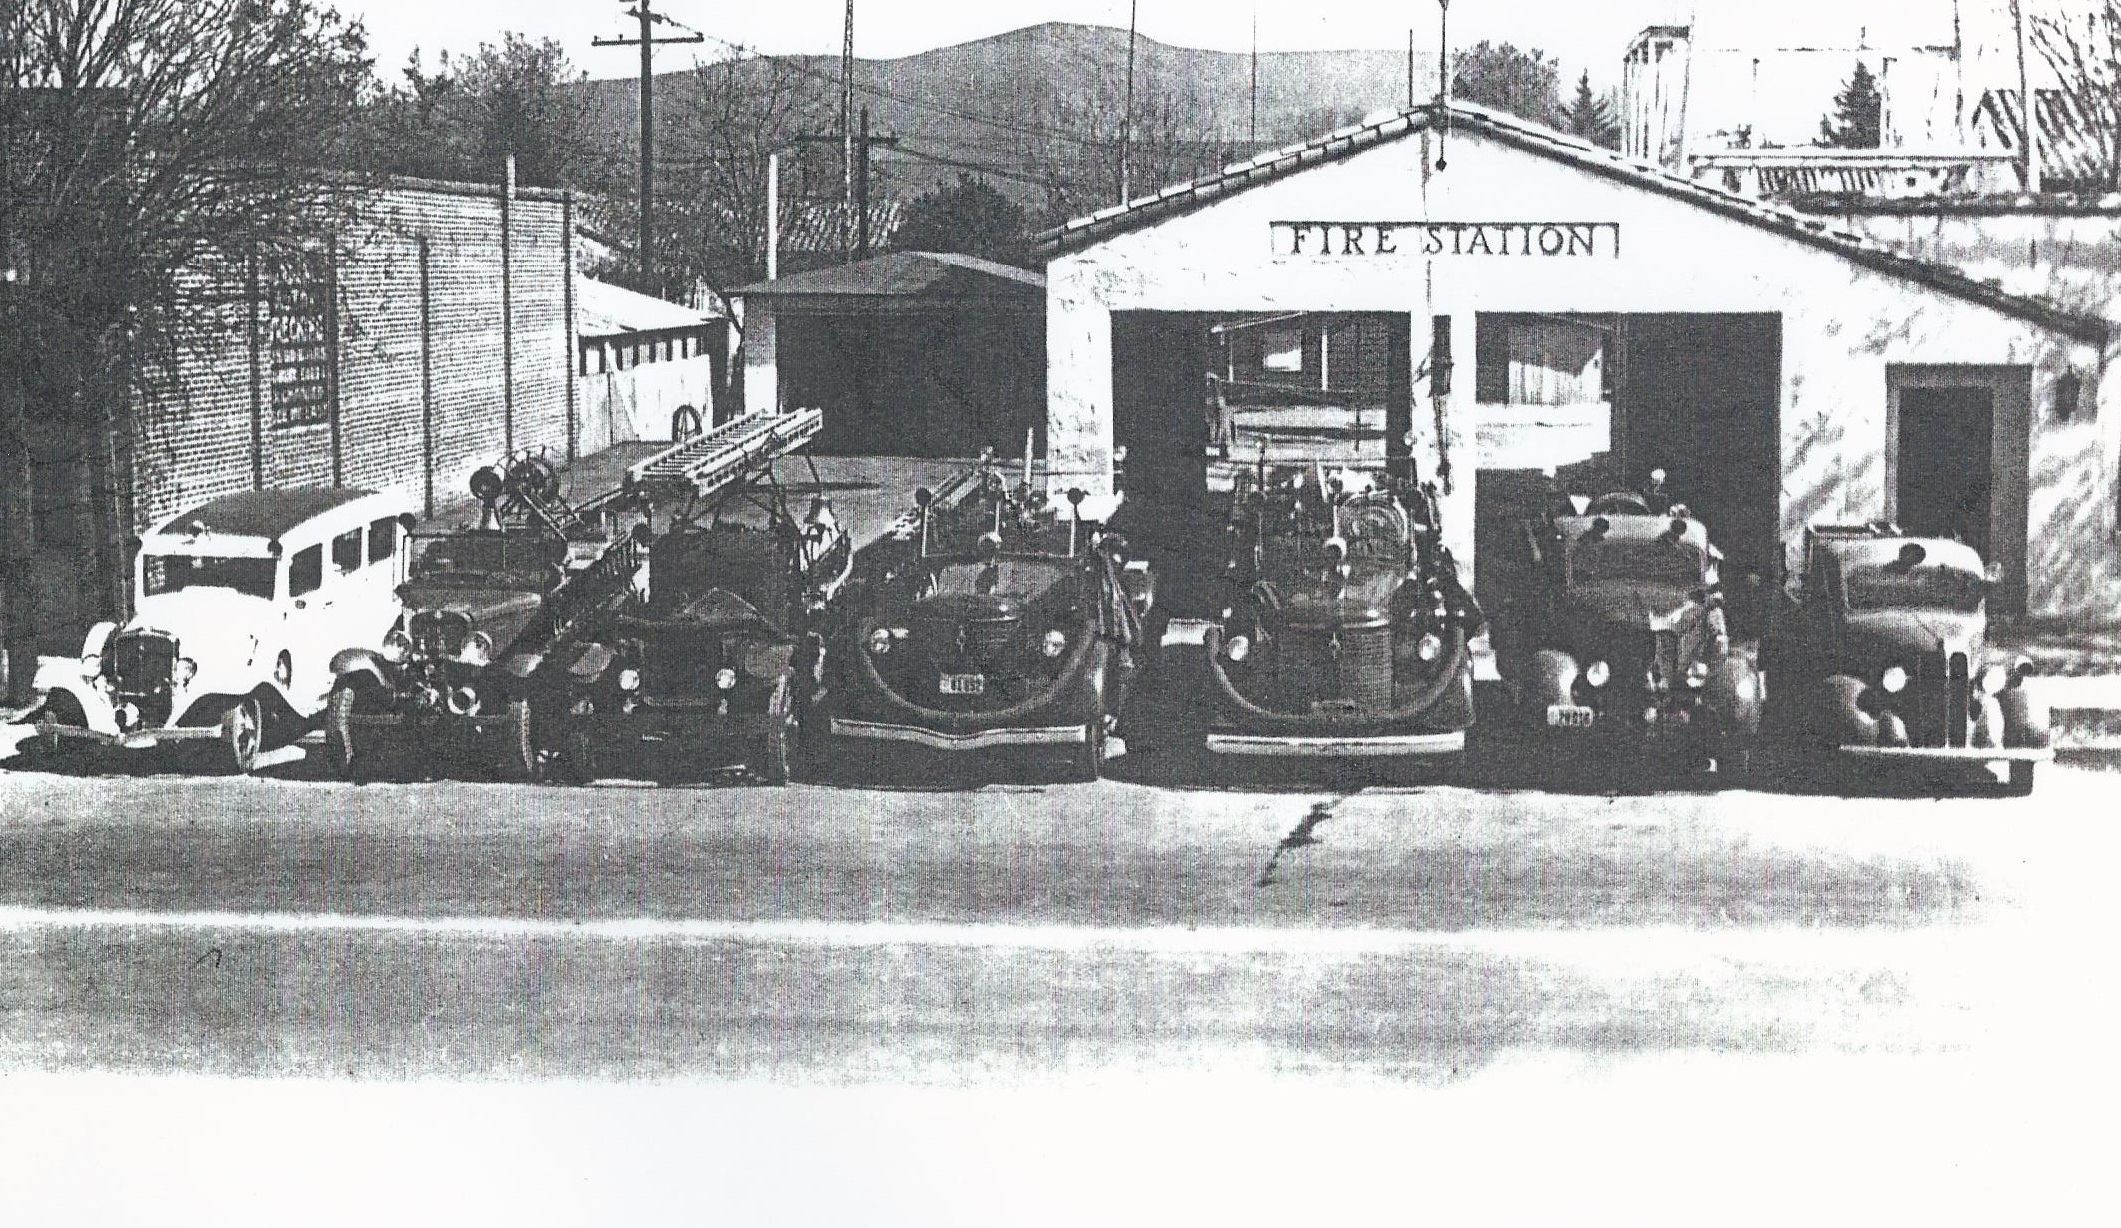 Lindsay fire department 1940's.jpg